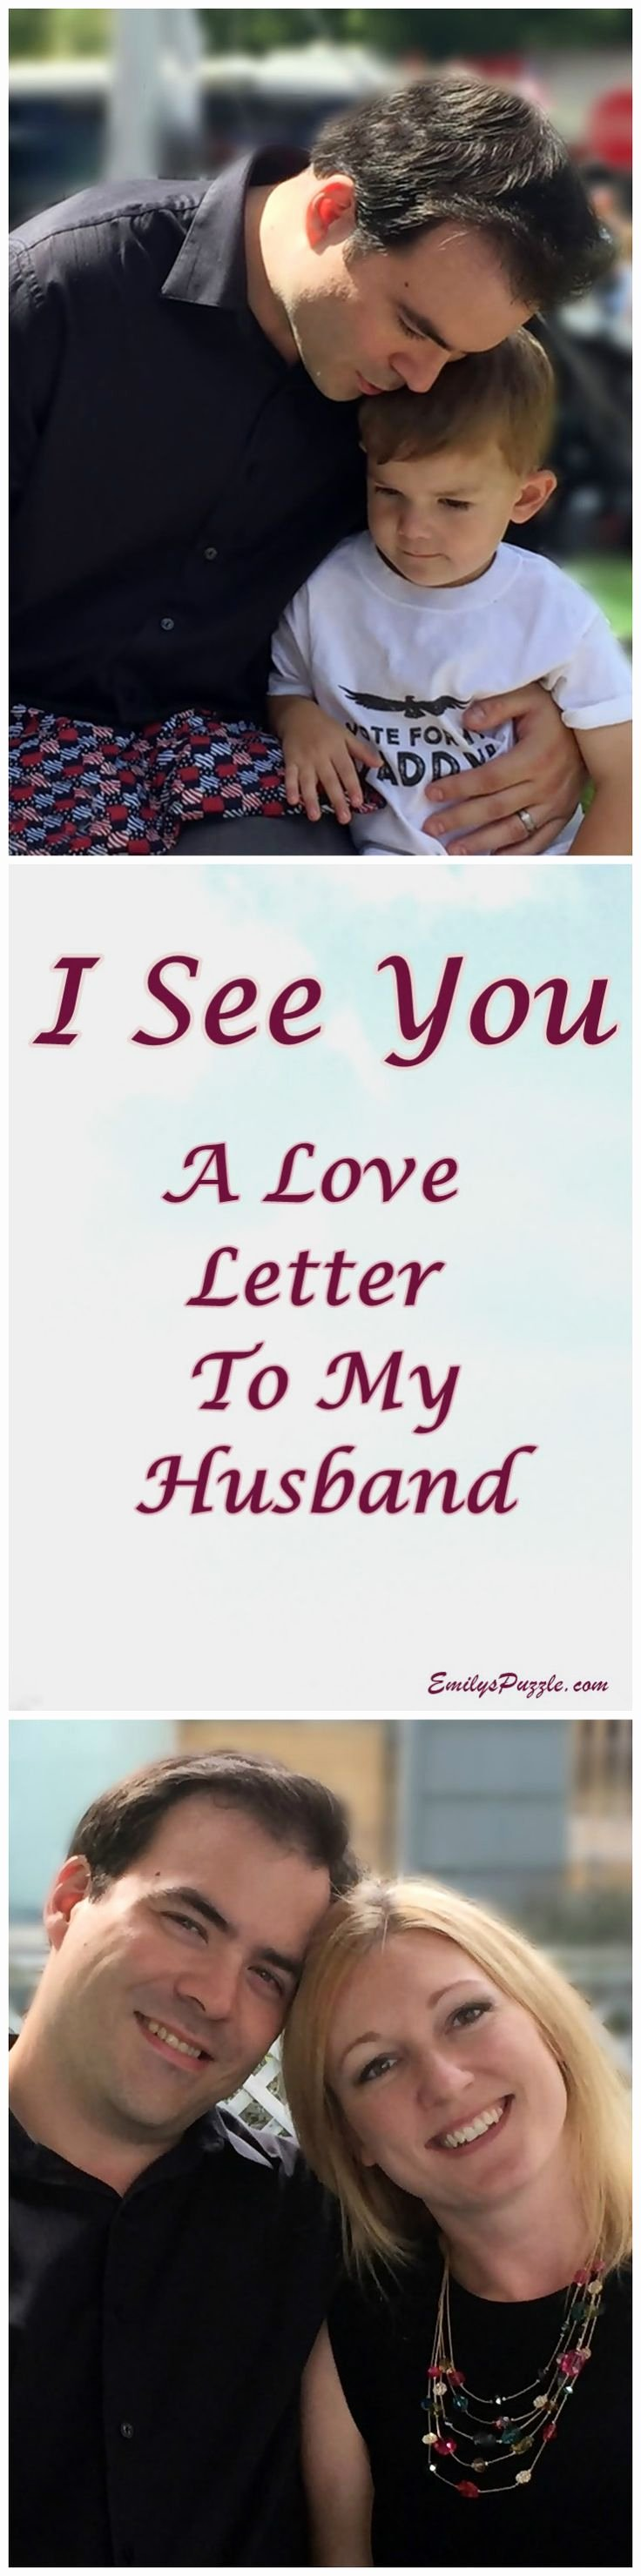 Letter to My Husband Unique I See You A Love Letter to My Husband